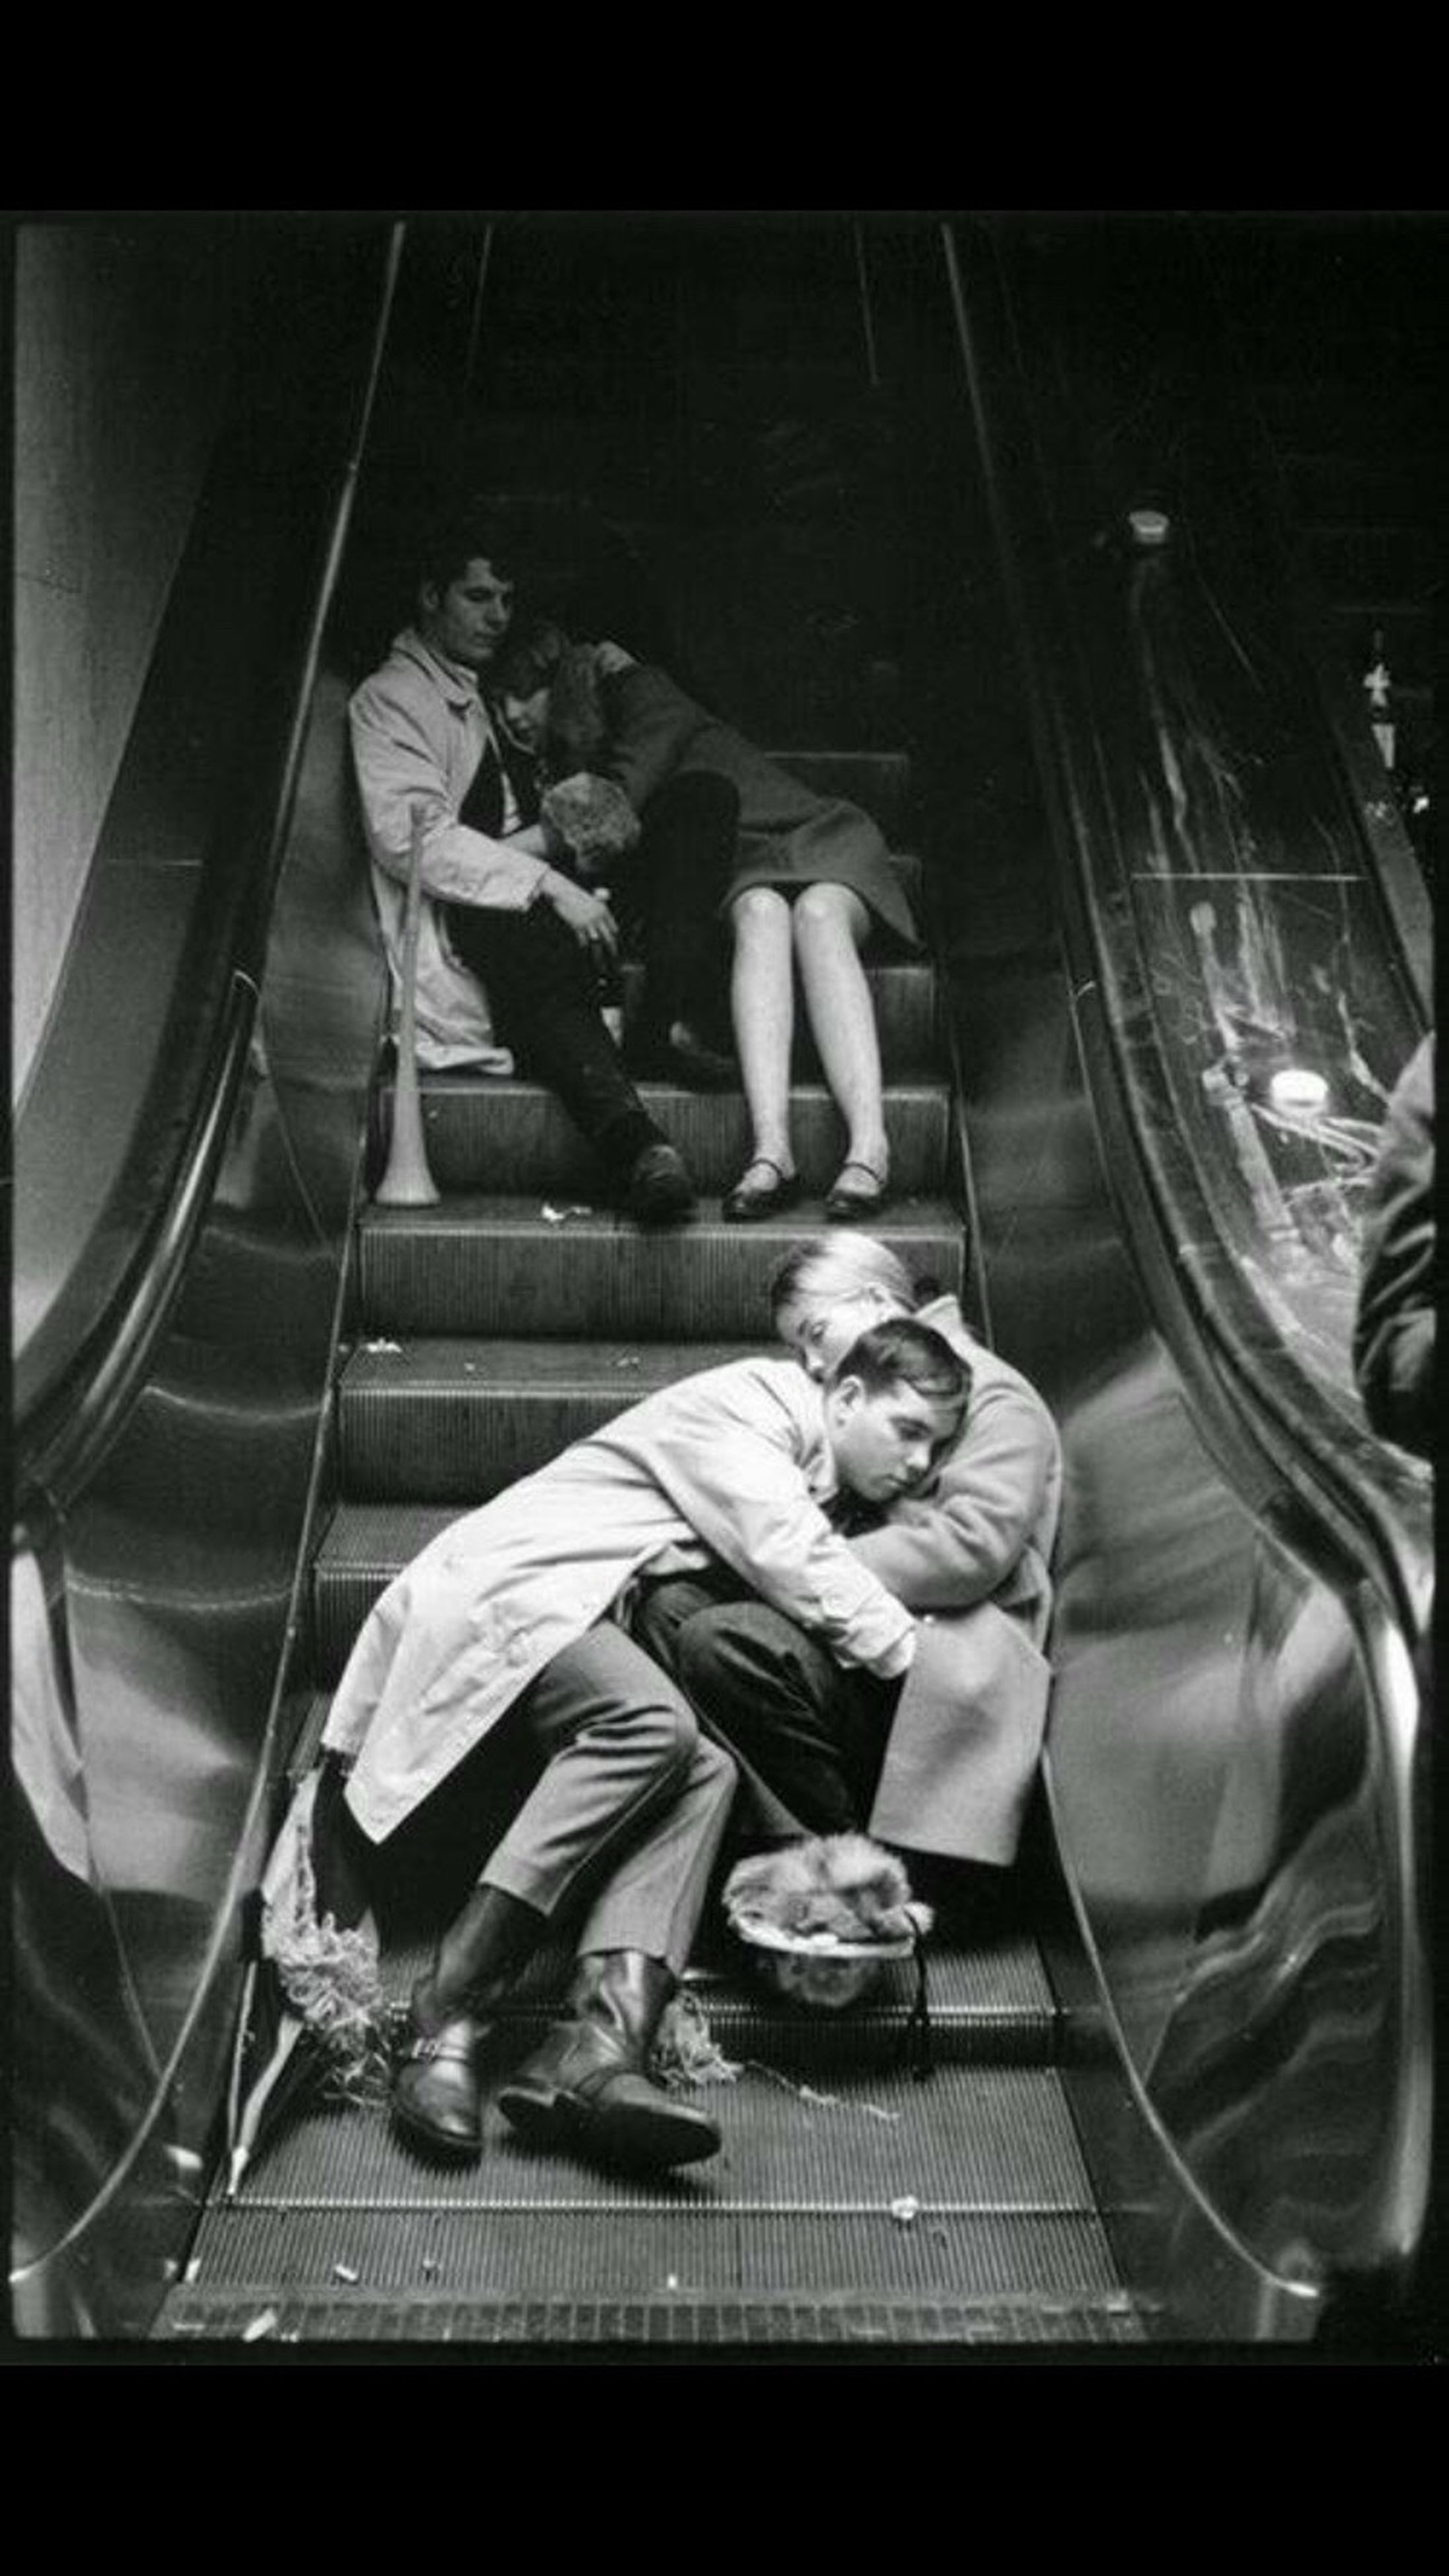 archival, senior adult, senior men, only men, indoors, people, adults only, subway train, adult, men, real people, one person, one man only, day